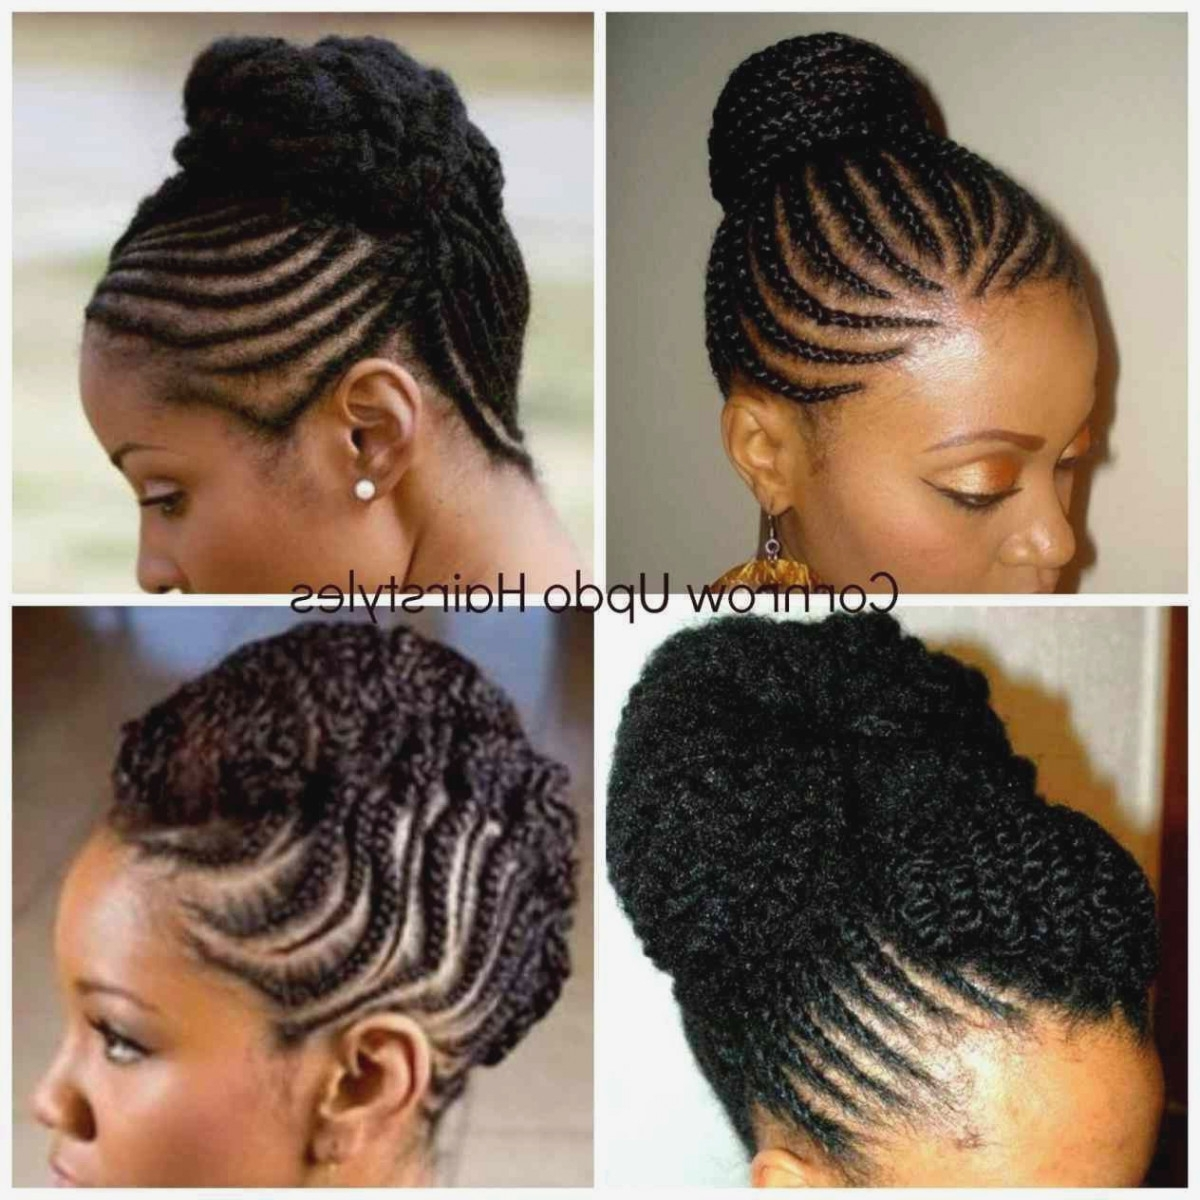 Astonishing Cornrow Hairstyle For Short Natural Hair Ideas Of Braid Inside 2017 Cornrows Hairstyles For Short Hair (View 1 of 15)